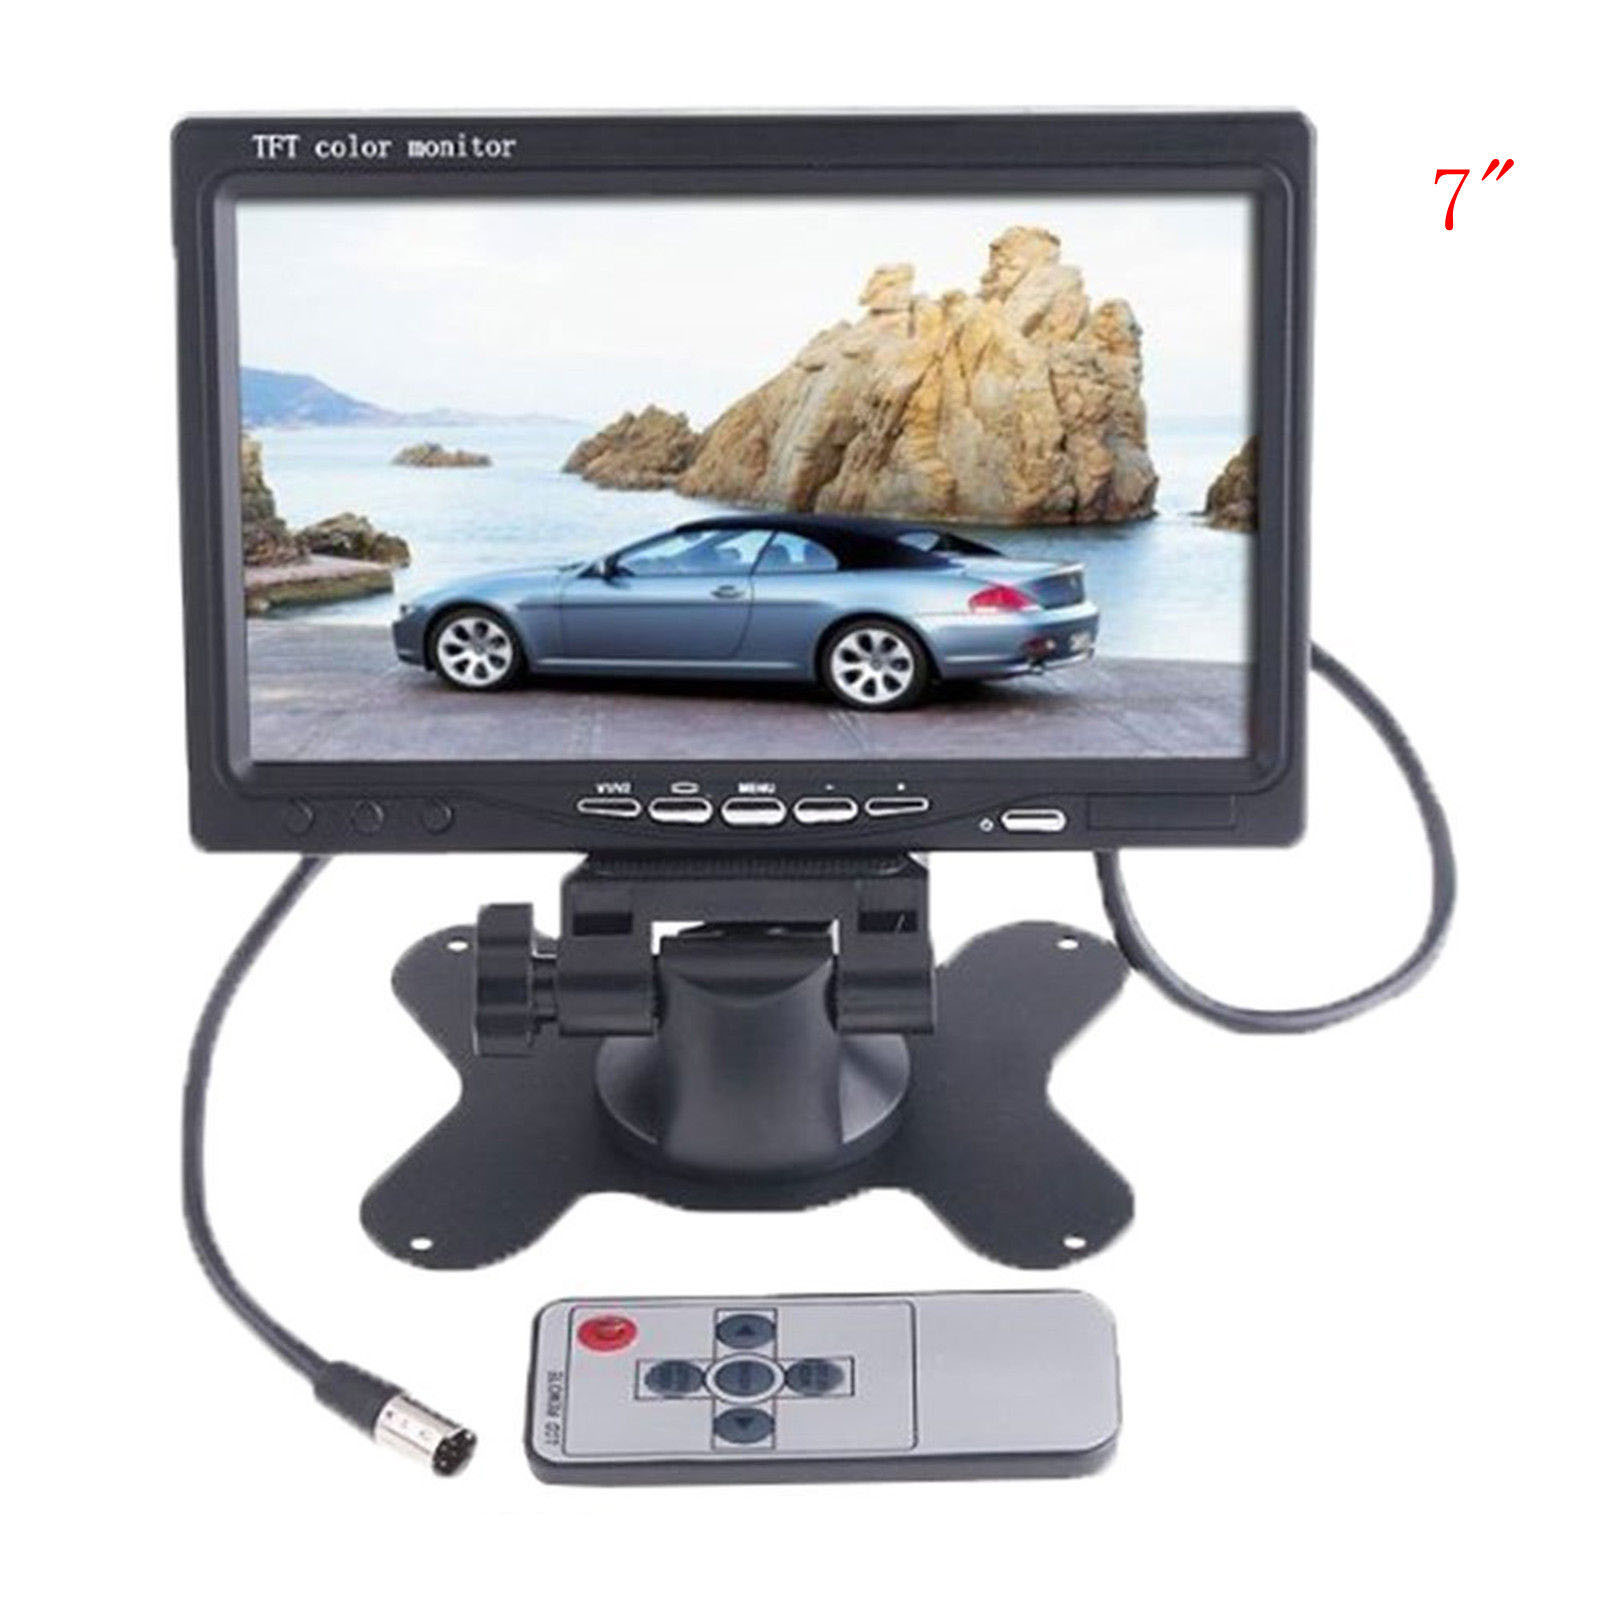 7 TFT LCD Color HD Screen Display Monitor For Car SUV Reversing Parking Camera FPV